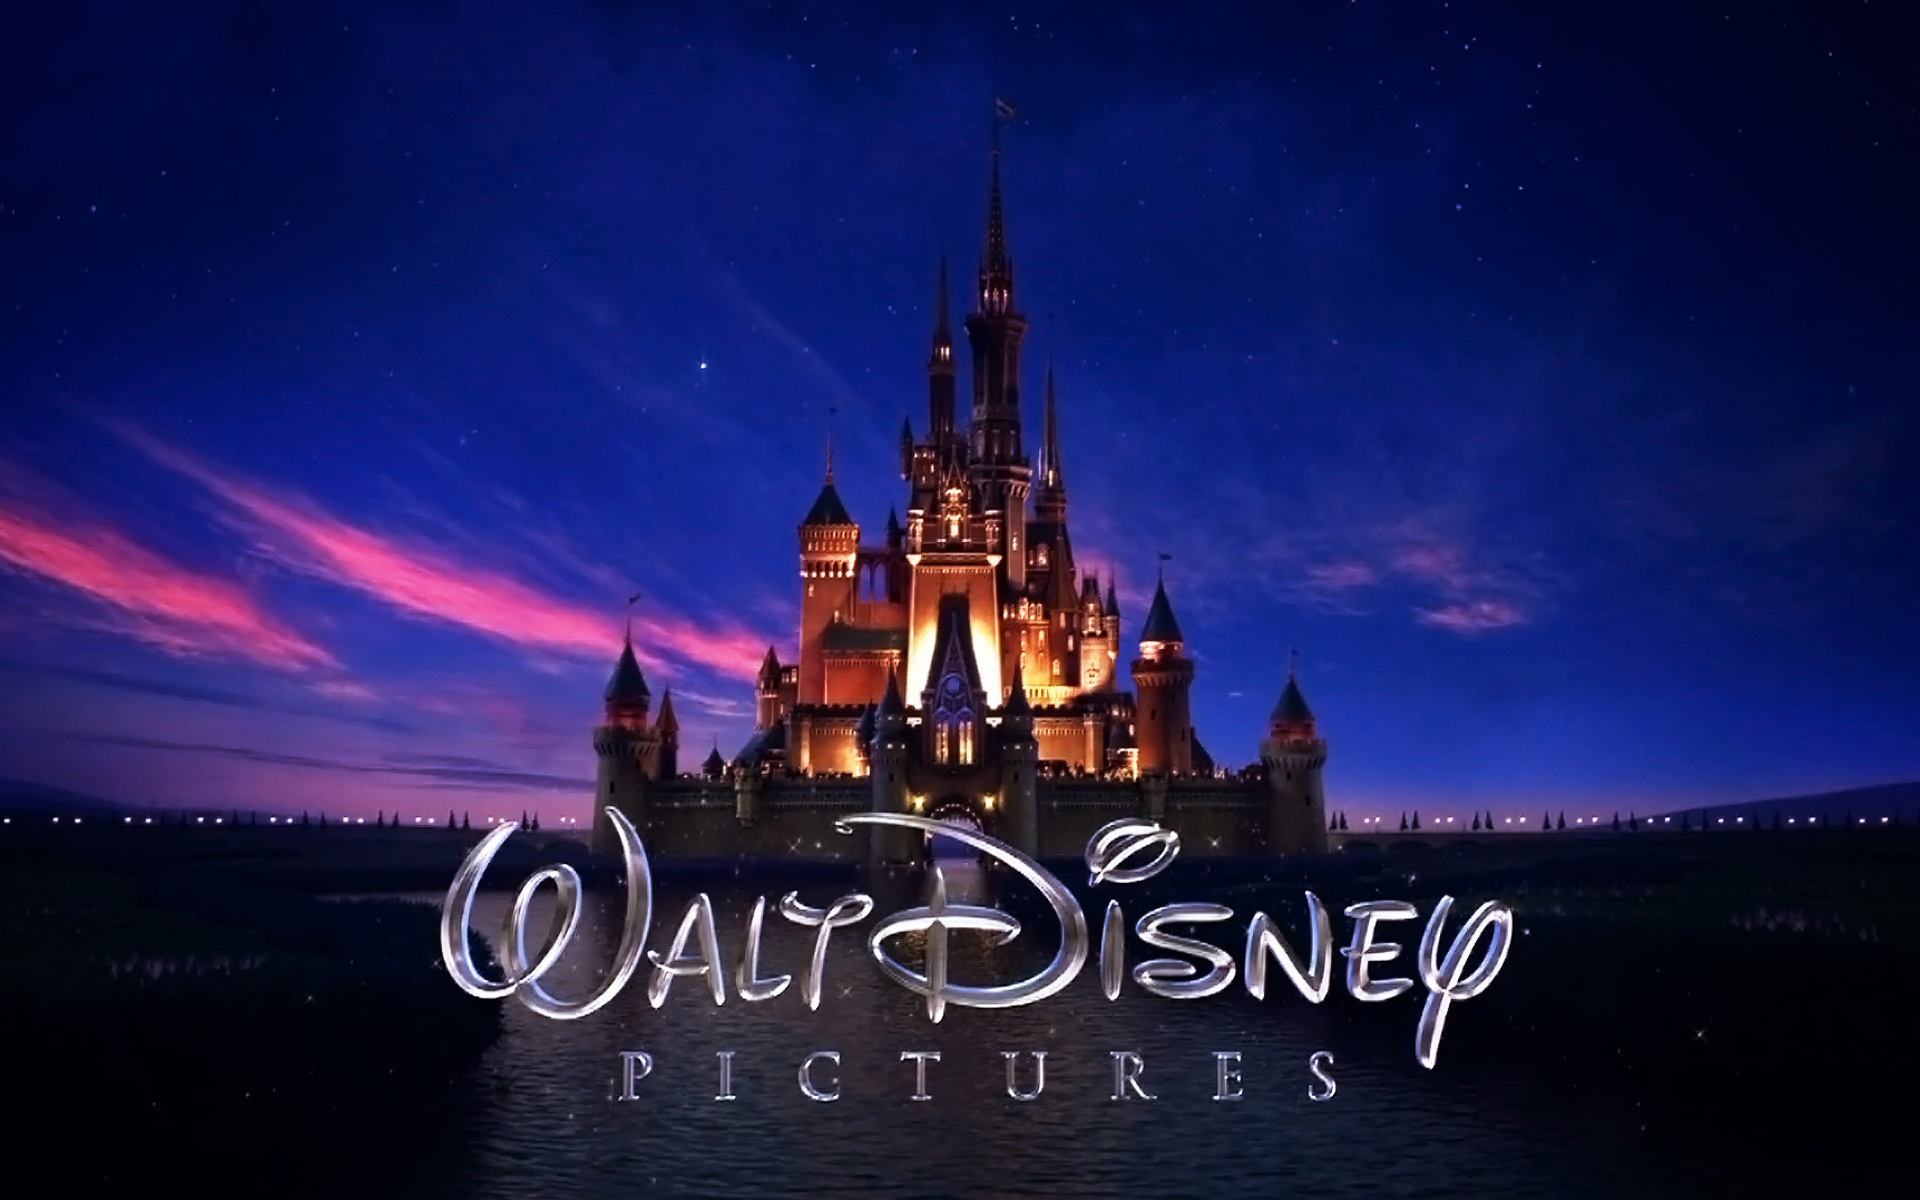 disney company motivational profile paper and presentation Disney company, walt disney, died on december 15, 1966 despite the loss of the great visionary behind the company, disney continued to grow in the years to come.